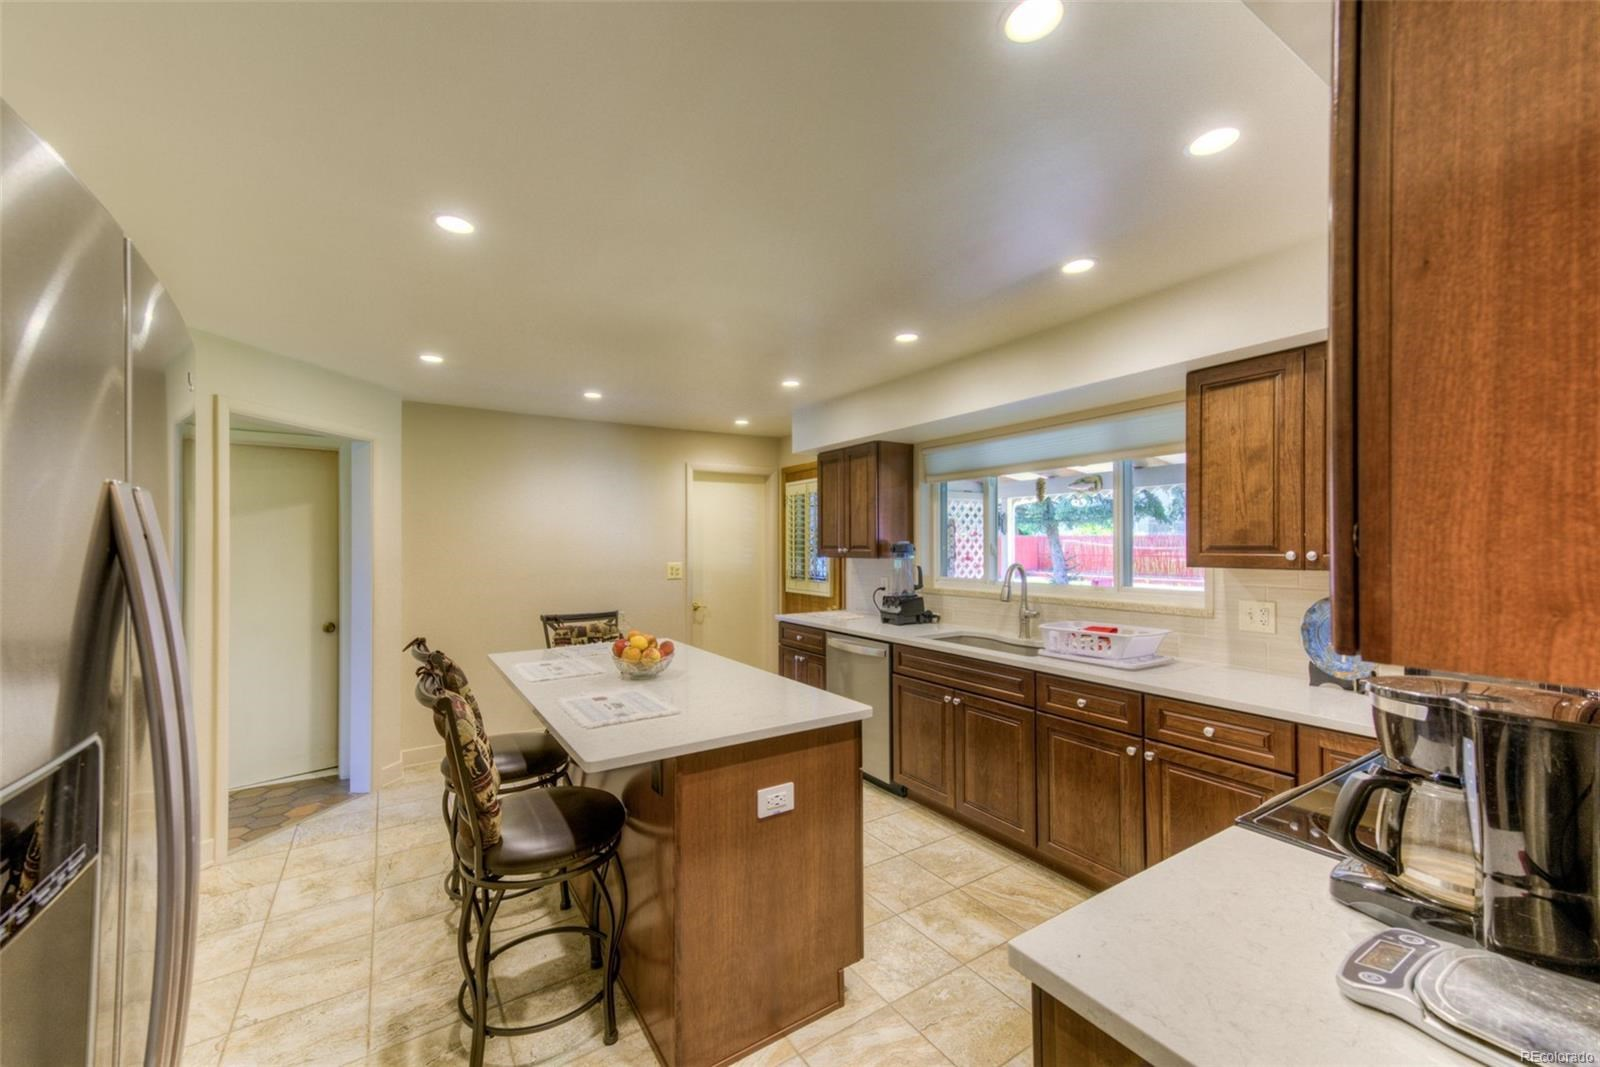 MLS# 5735873 - 6 - 45 S Brentwood Street, Lakewood, CO 80226